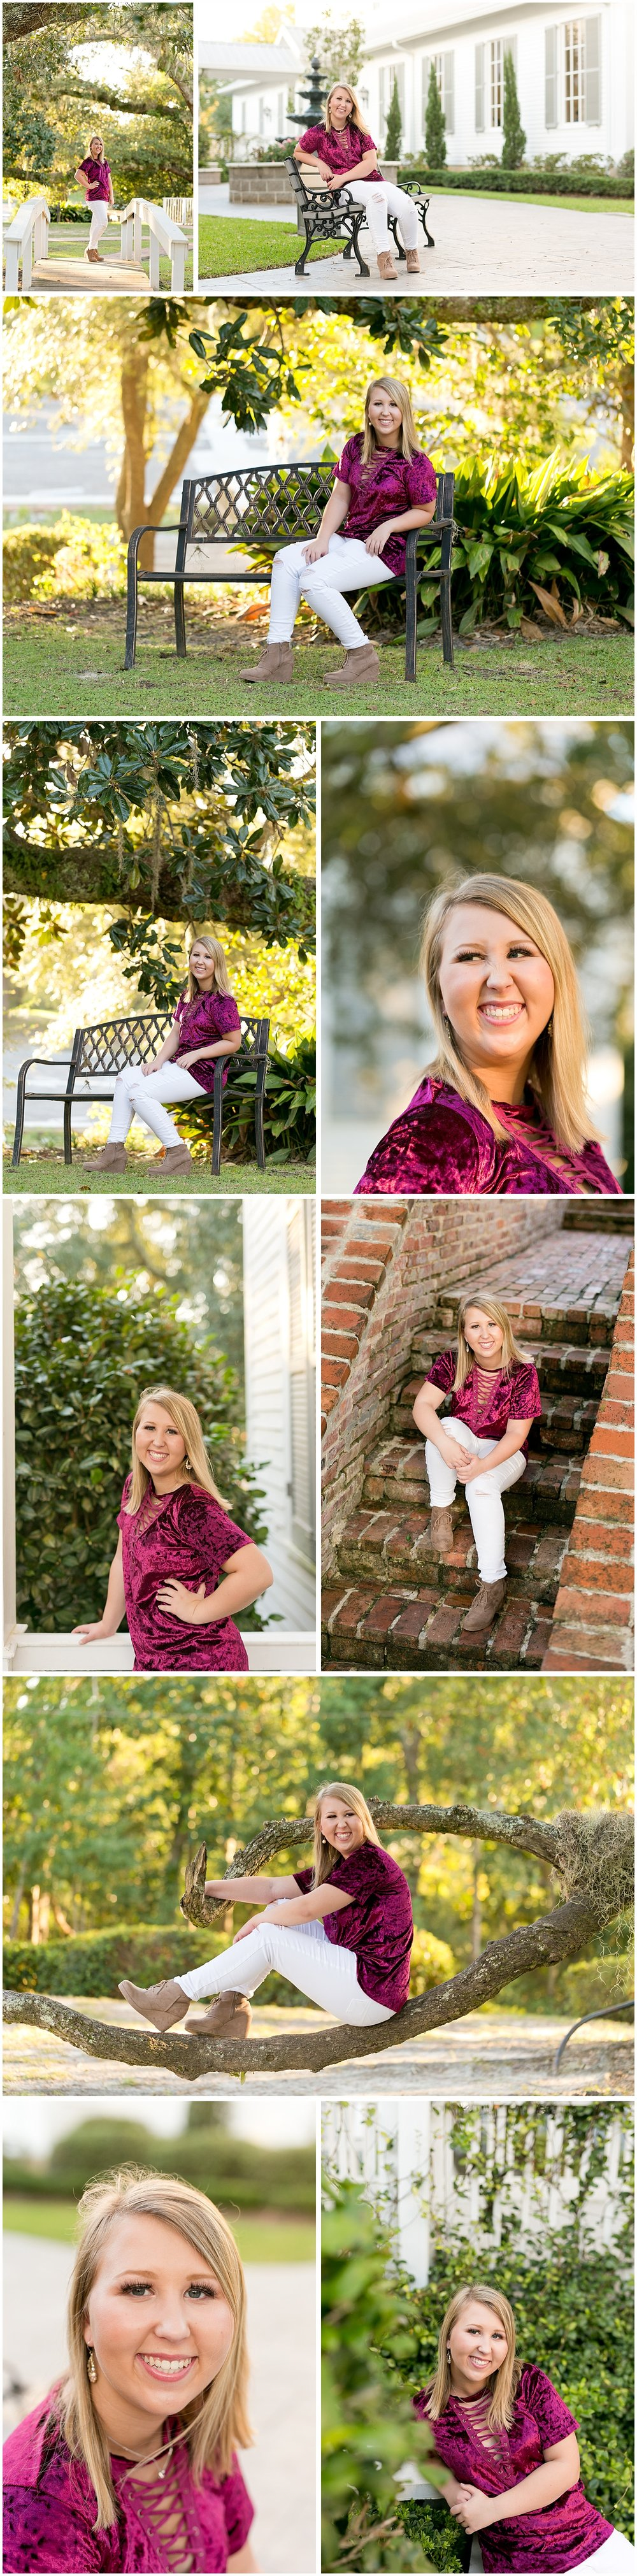 Ocean Springs, Mississippi senior portrait photographer Uninvented Colors Photography